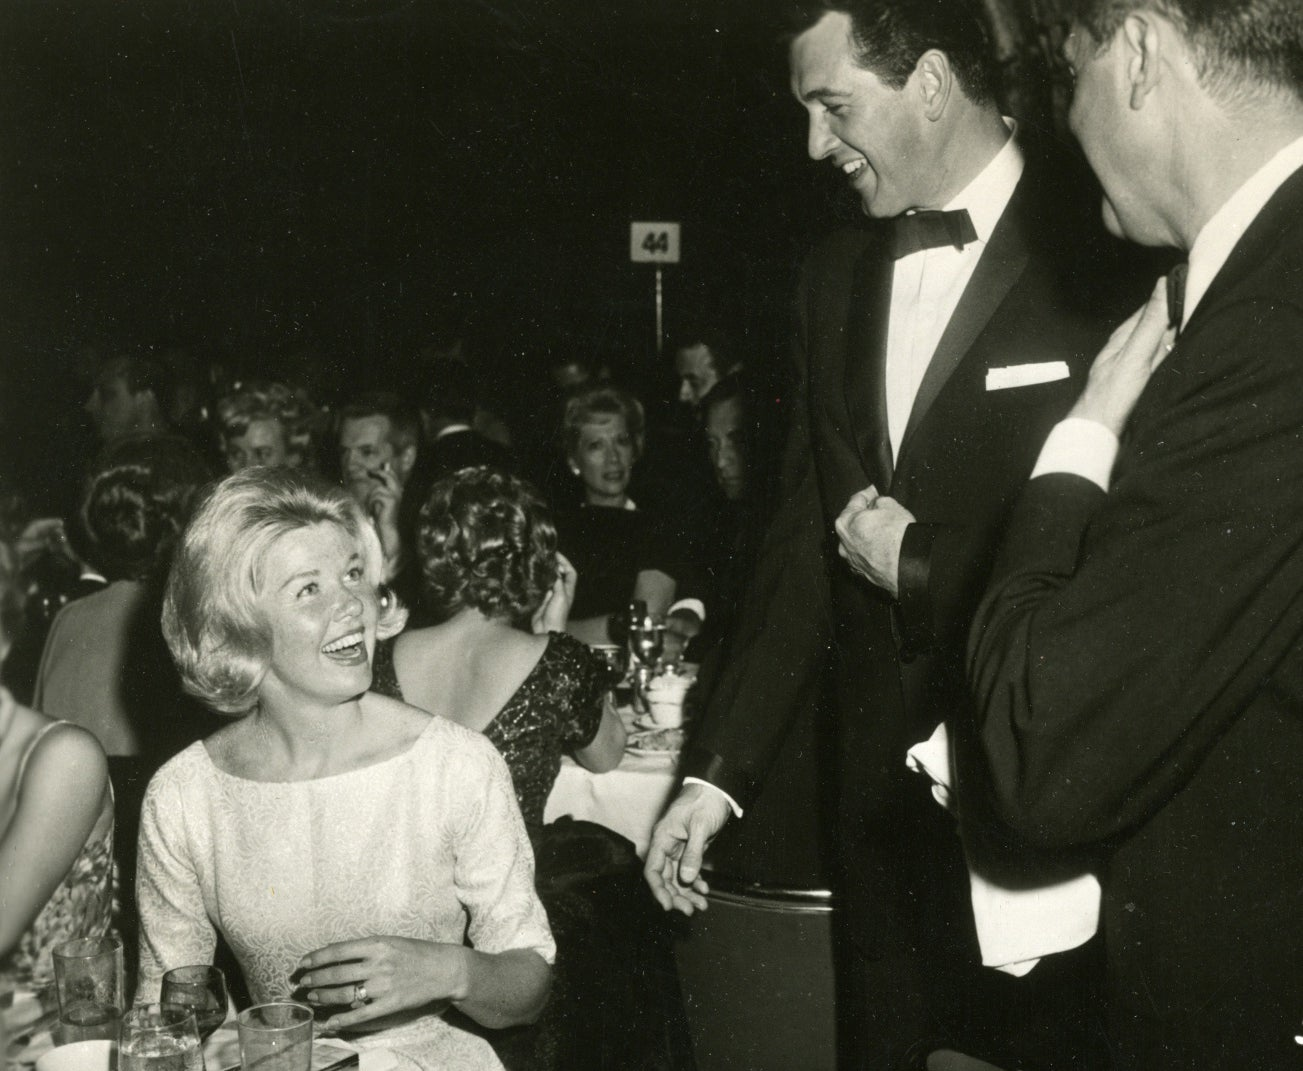 Golden Globe Moment Rock Hudson Congratulates Doris Day